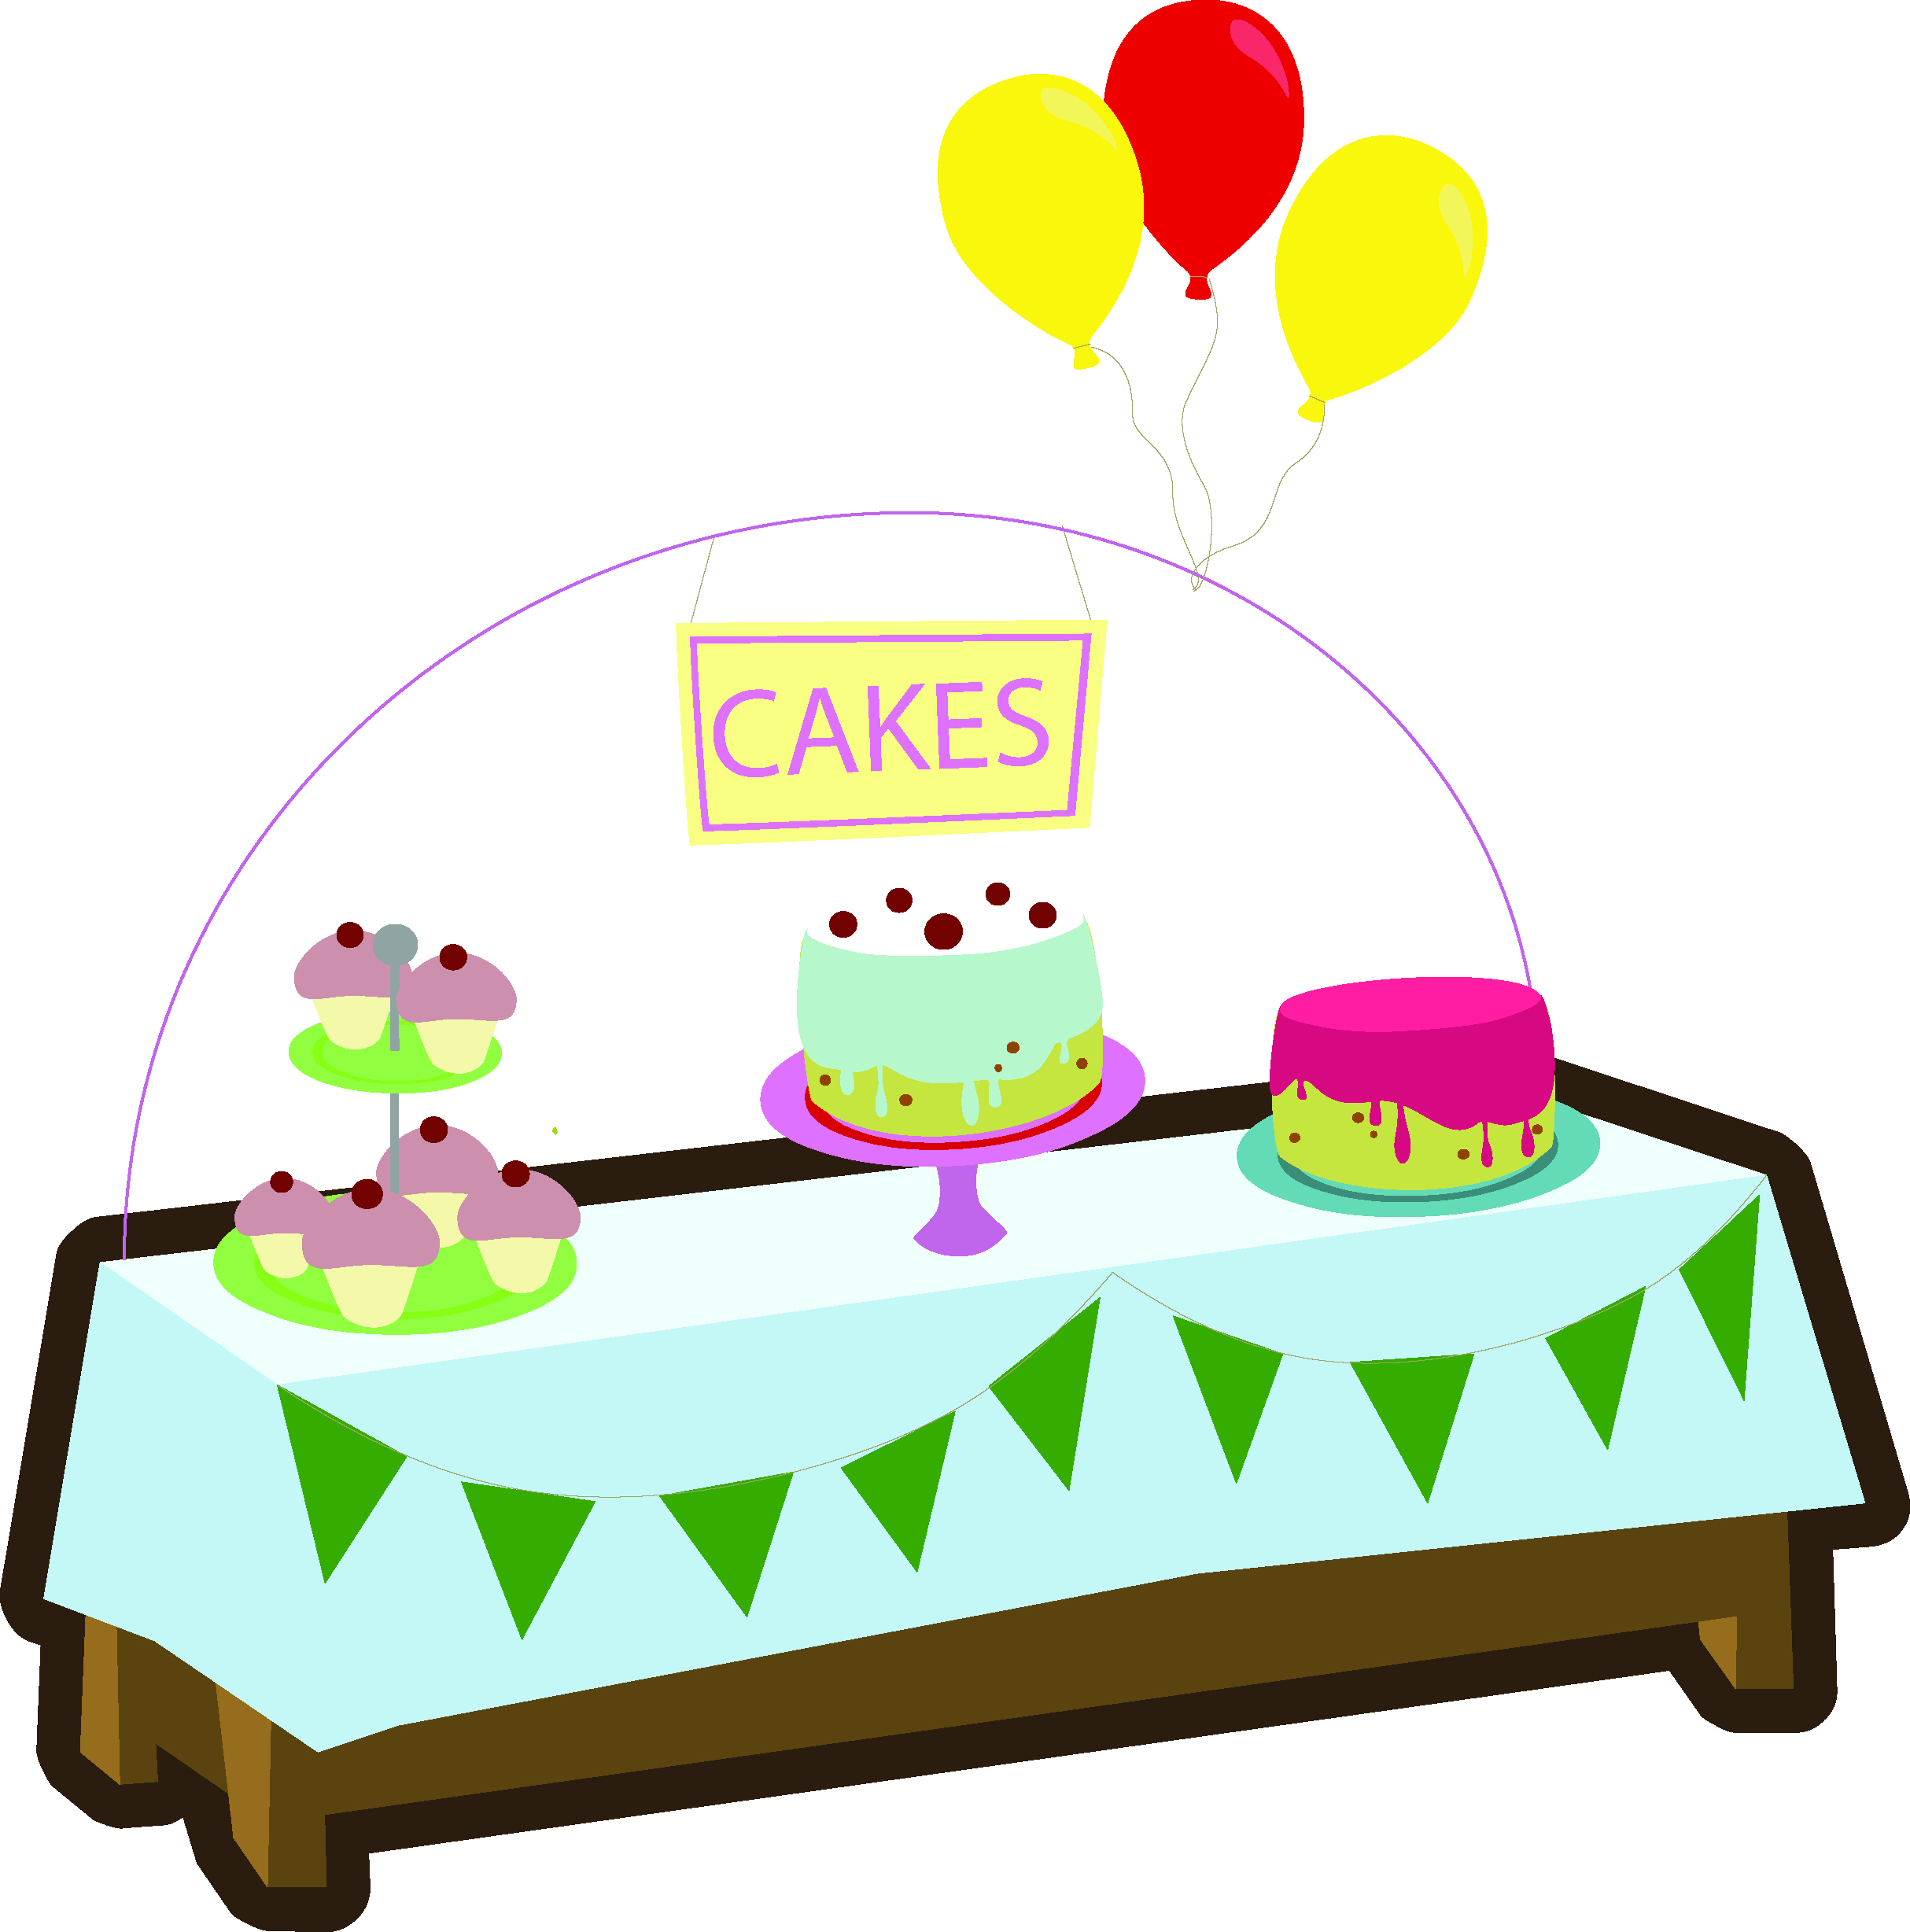 Cake stall clipart image royalty free stock Baking clipart cake stall, Baking cake stall Transparent FREE for ... image royalty free stock